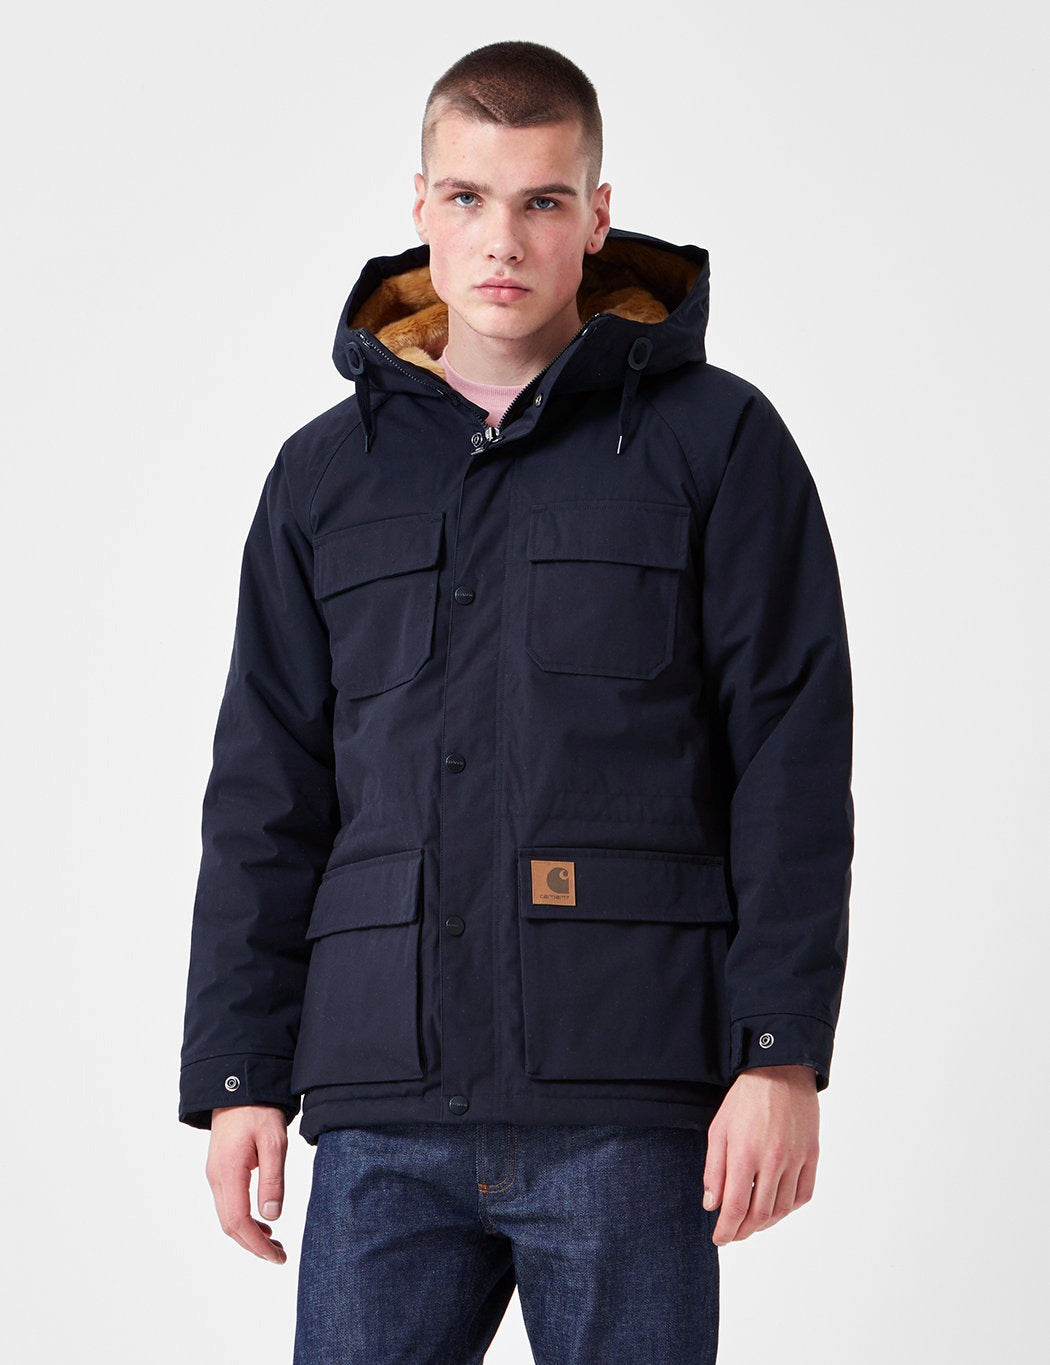 25ef65b39 Carhartt Mentley Jacket - Dark Navy Blue